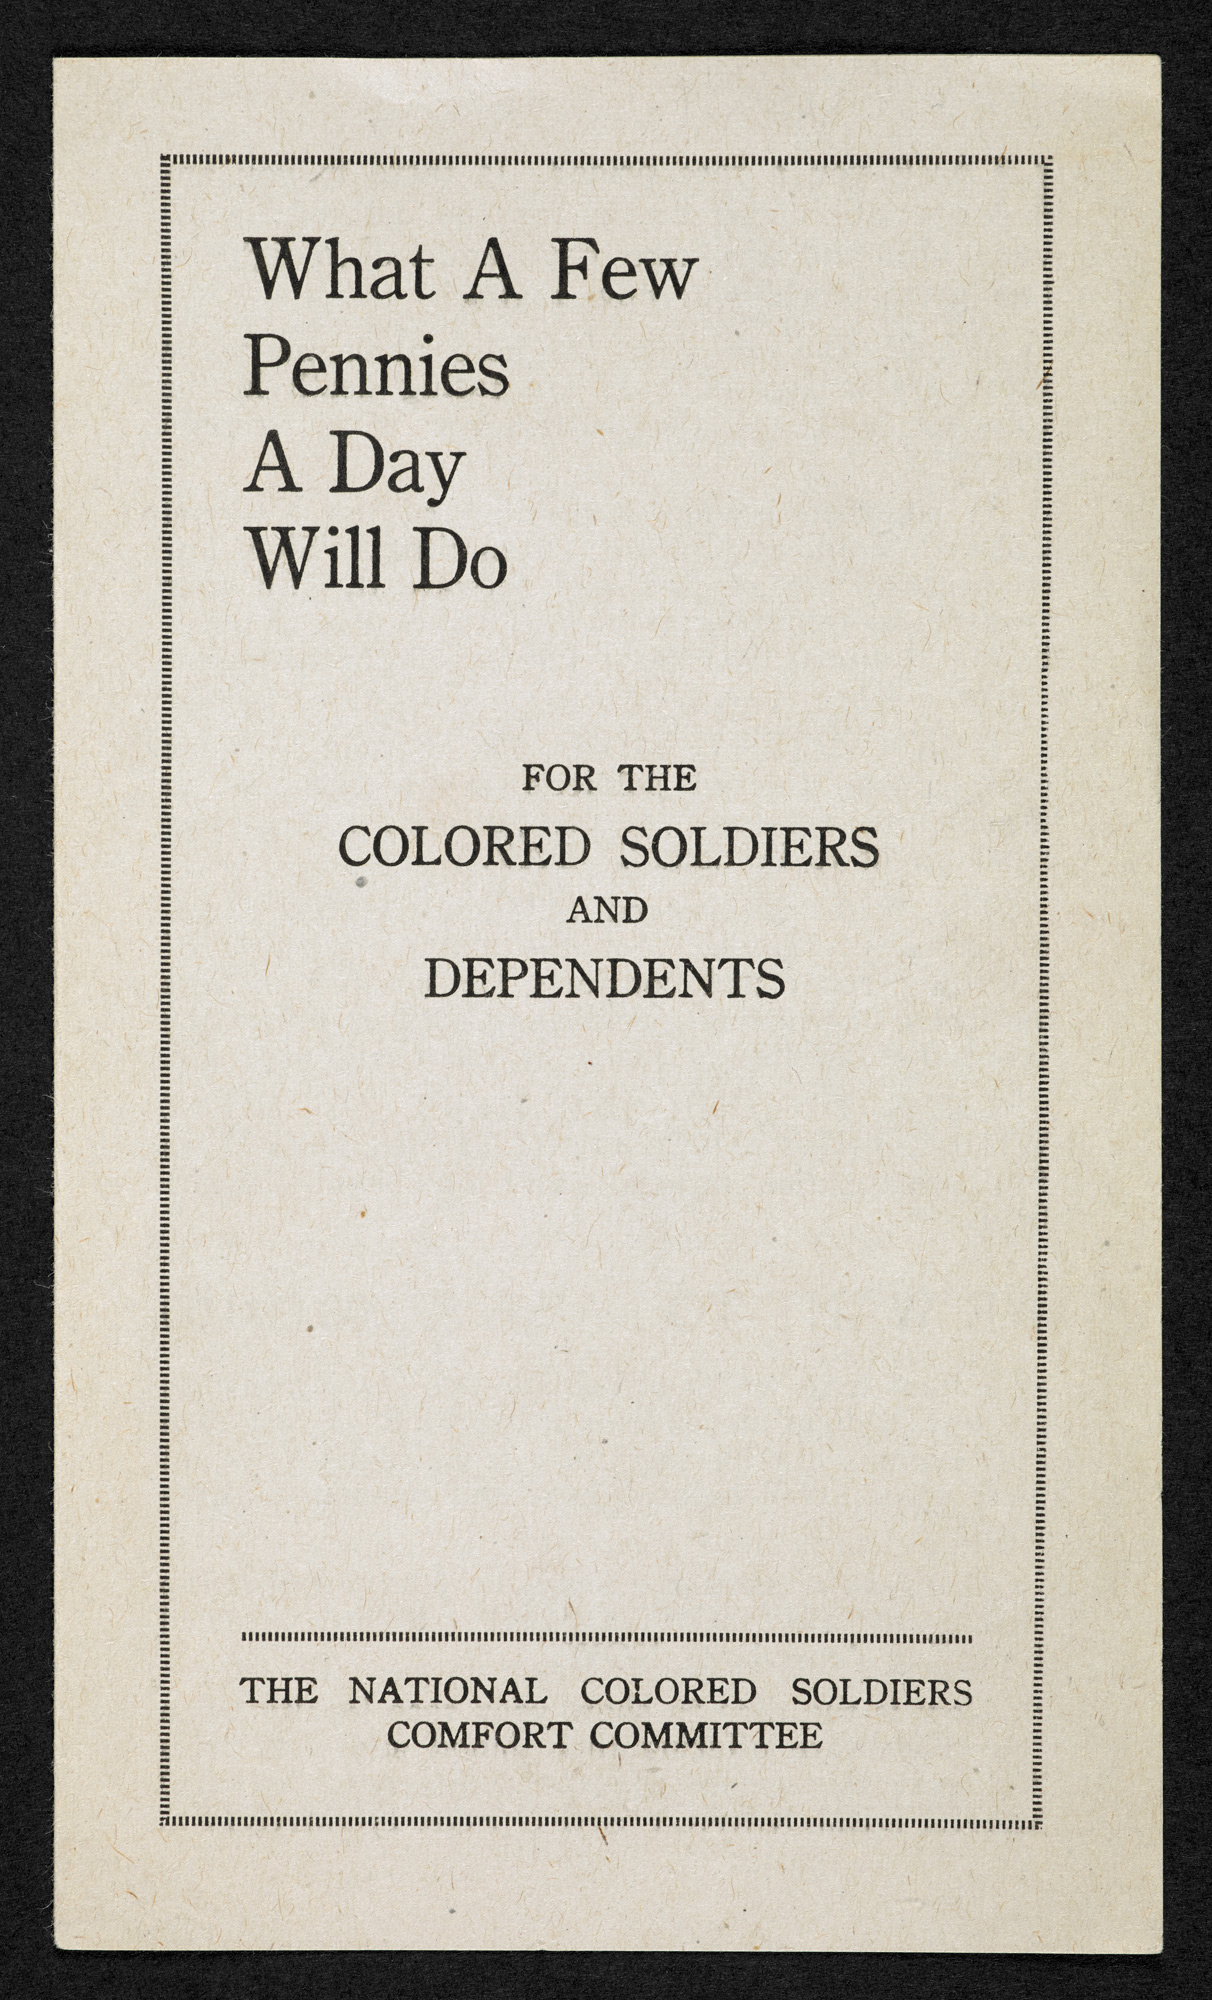 *What a few pennies a day will do for the colored soldiers and dependents*, a fundraising leaflet from the National Colored Soldiers Comfort Committee